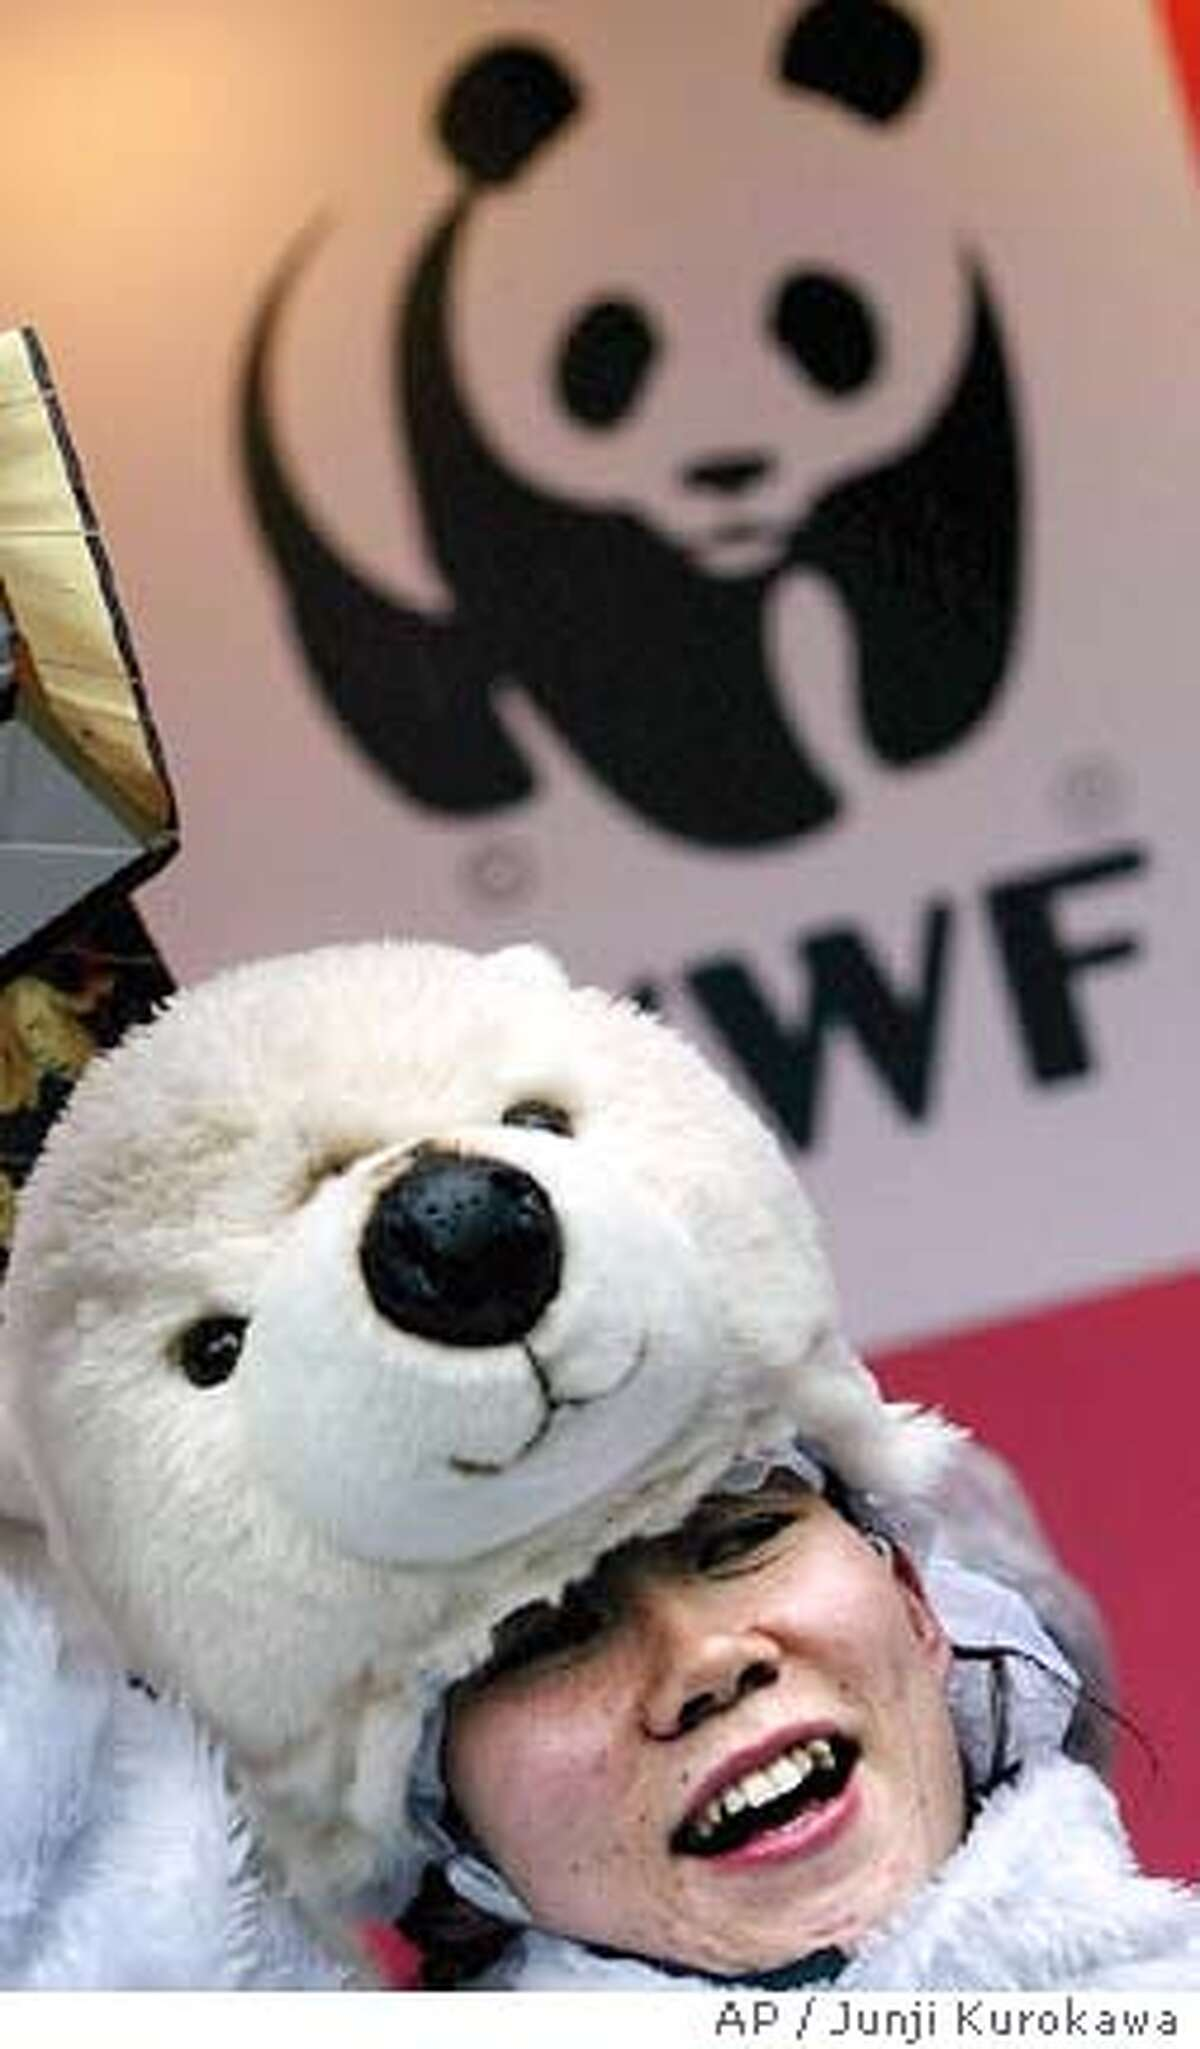 An activist in a polar bear outfit speaks out to the public about the Kyoto global warming pact in a downtown street in Tokyo, Wednesday, Feb 16, 2005. The Kyoto global warming pact took effect Wednesday seven years after it was negotiated, requiring dozens of industrial nations to reduce emissions of